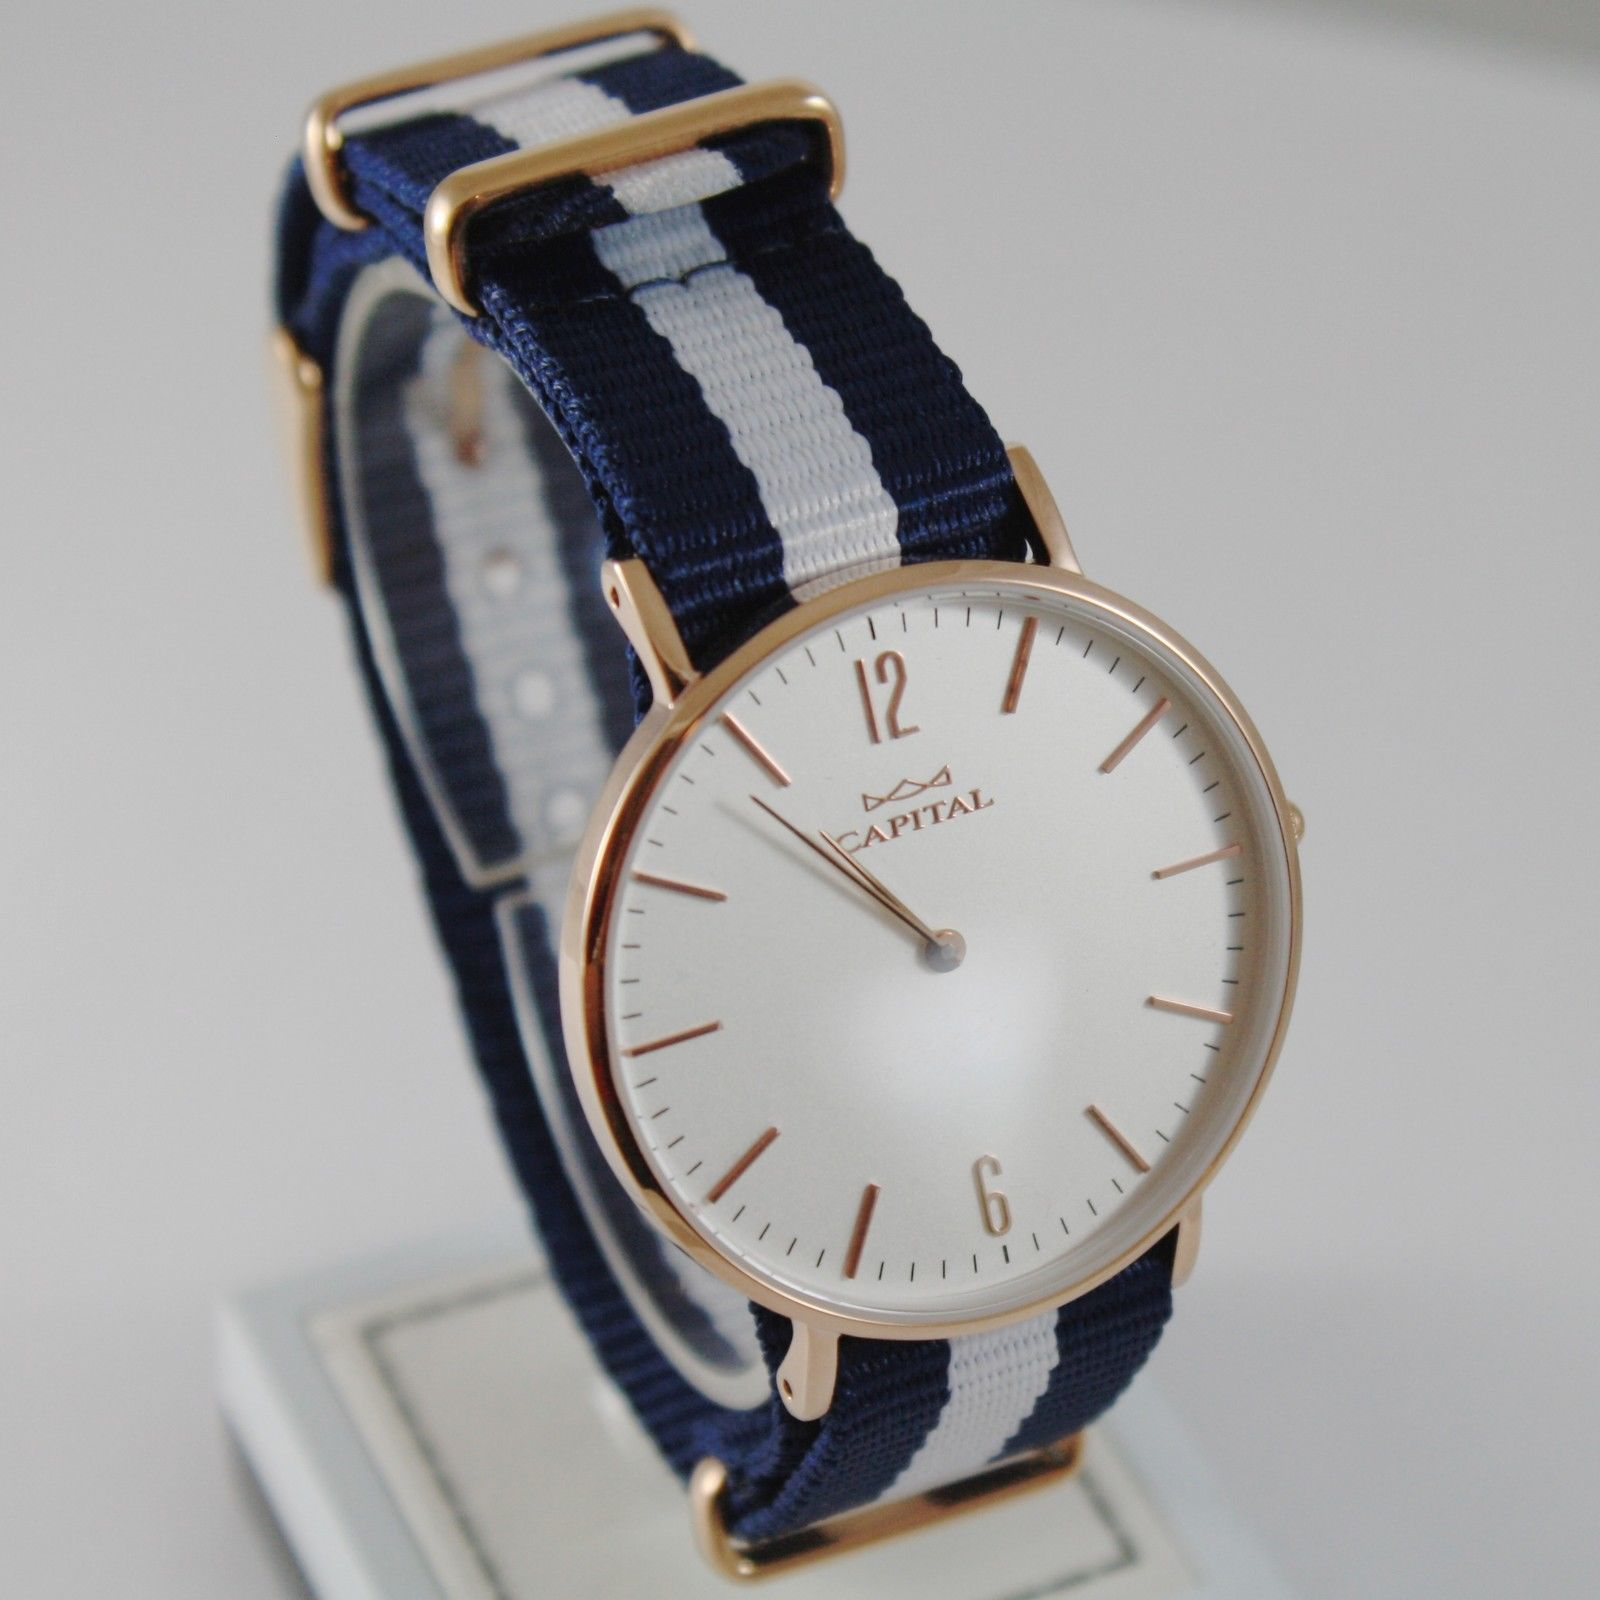 CAPITAL WATCH QUARTZ MOVEMENT 36 MM ROSE CASE BLUE AND WHITE FABRIC BAND VINTAGE